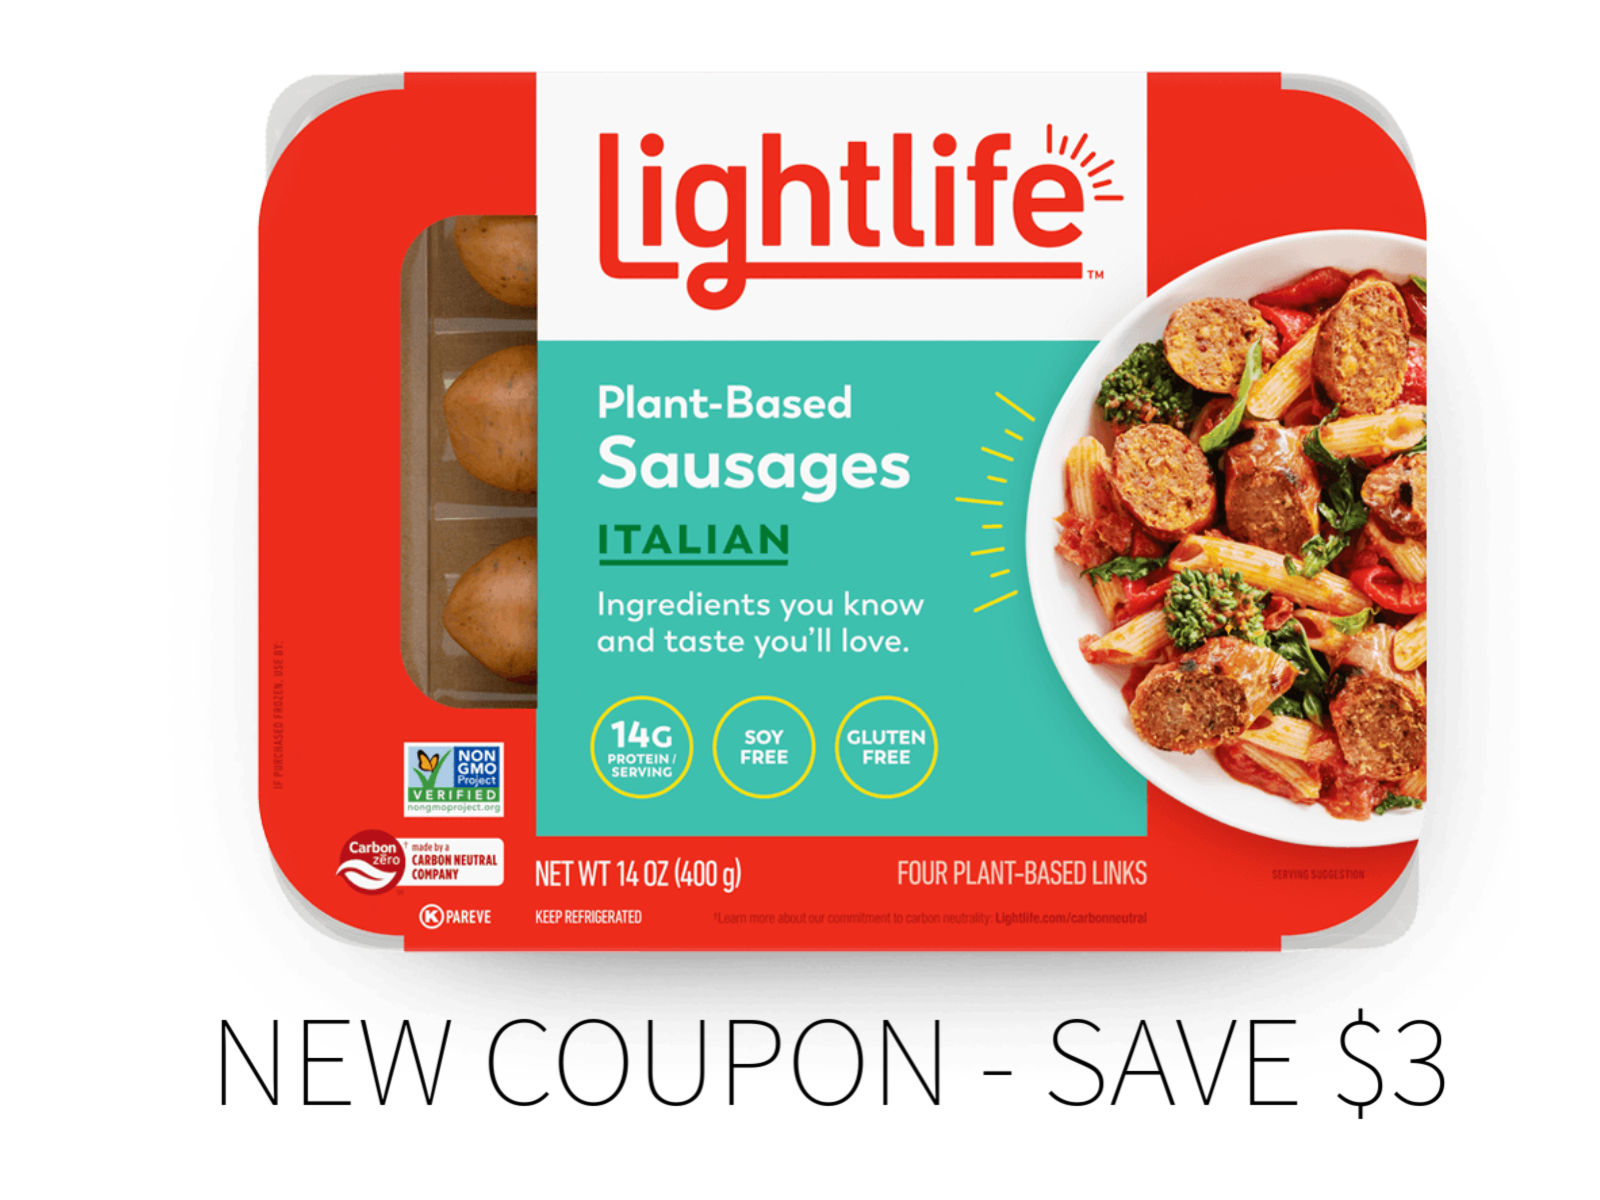 $3 Off Lightlife Dinner Sausage - New Coupon! on I Heart Publix